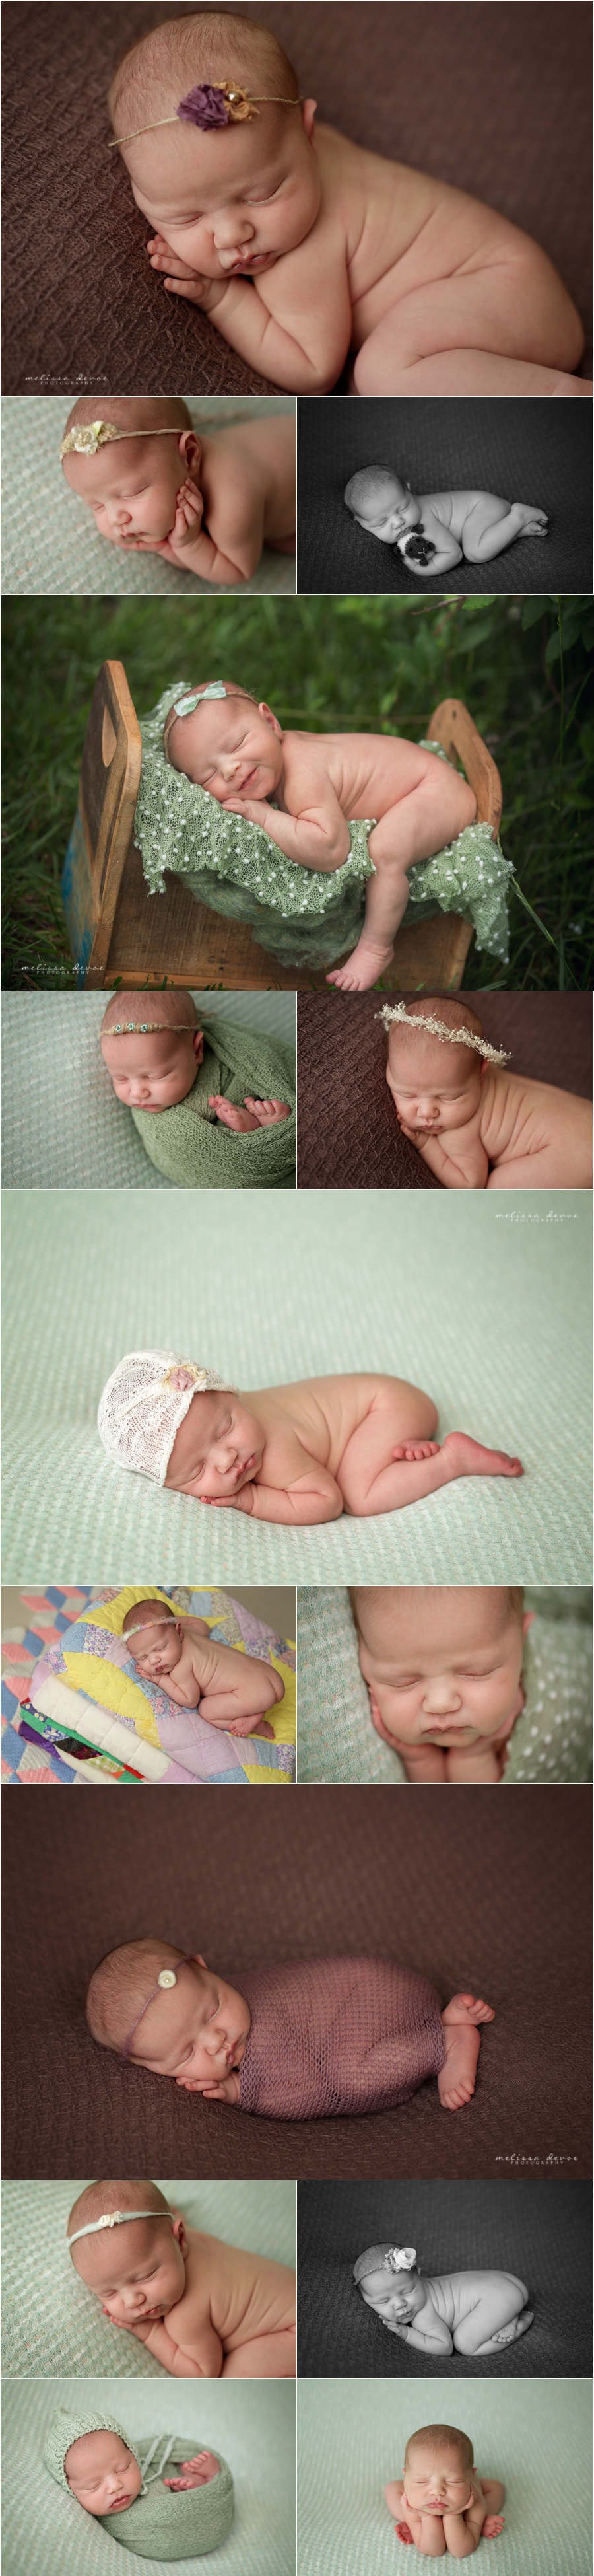 Melissa DeVoe Photography Raleigh Baby and Newborn Photographer 2